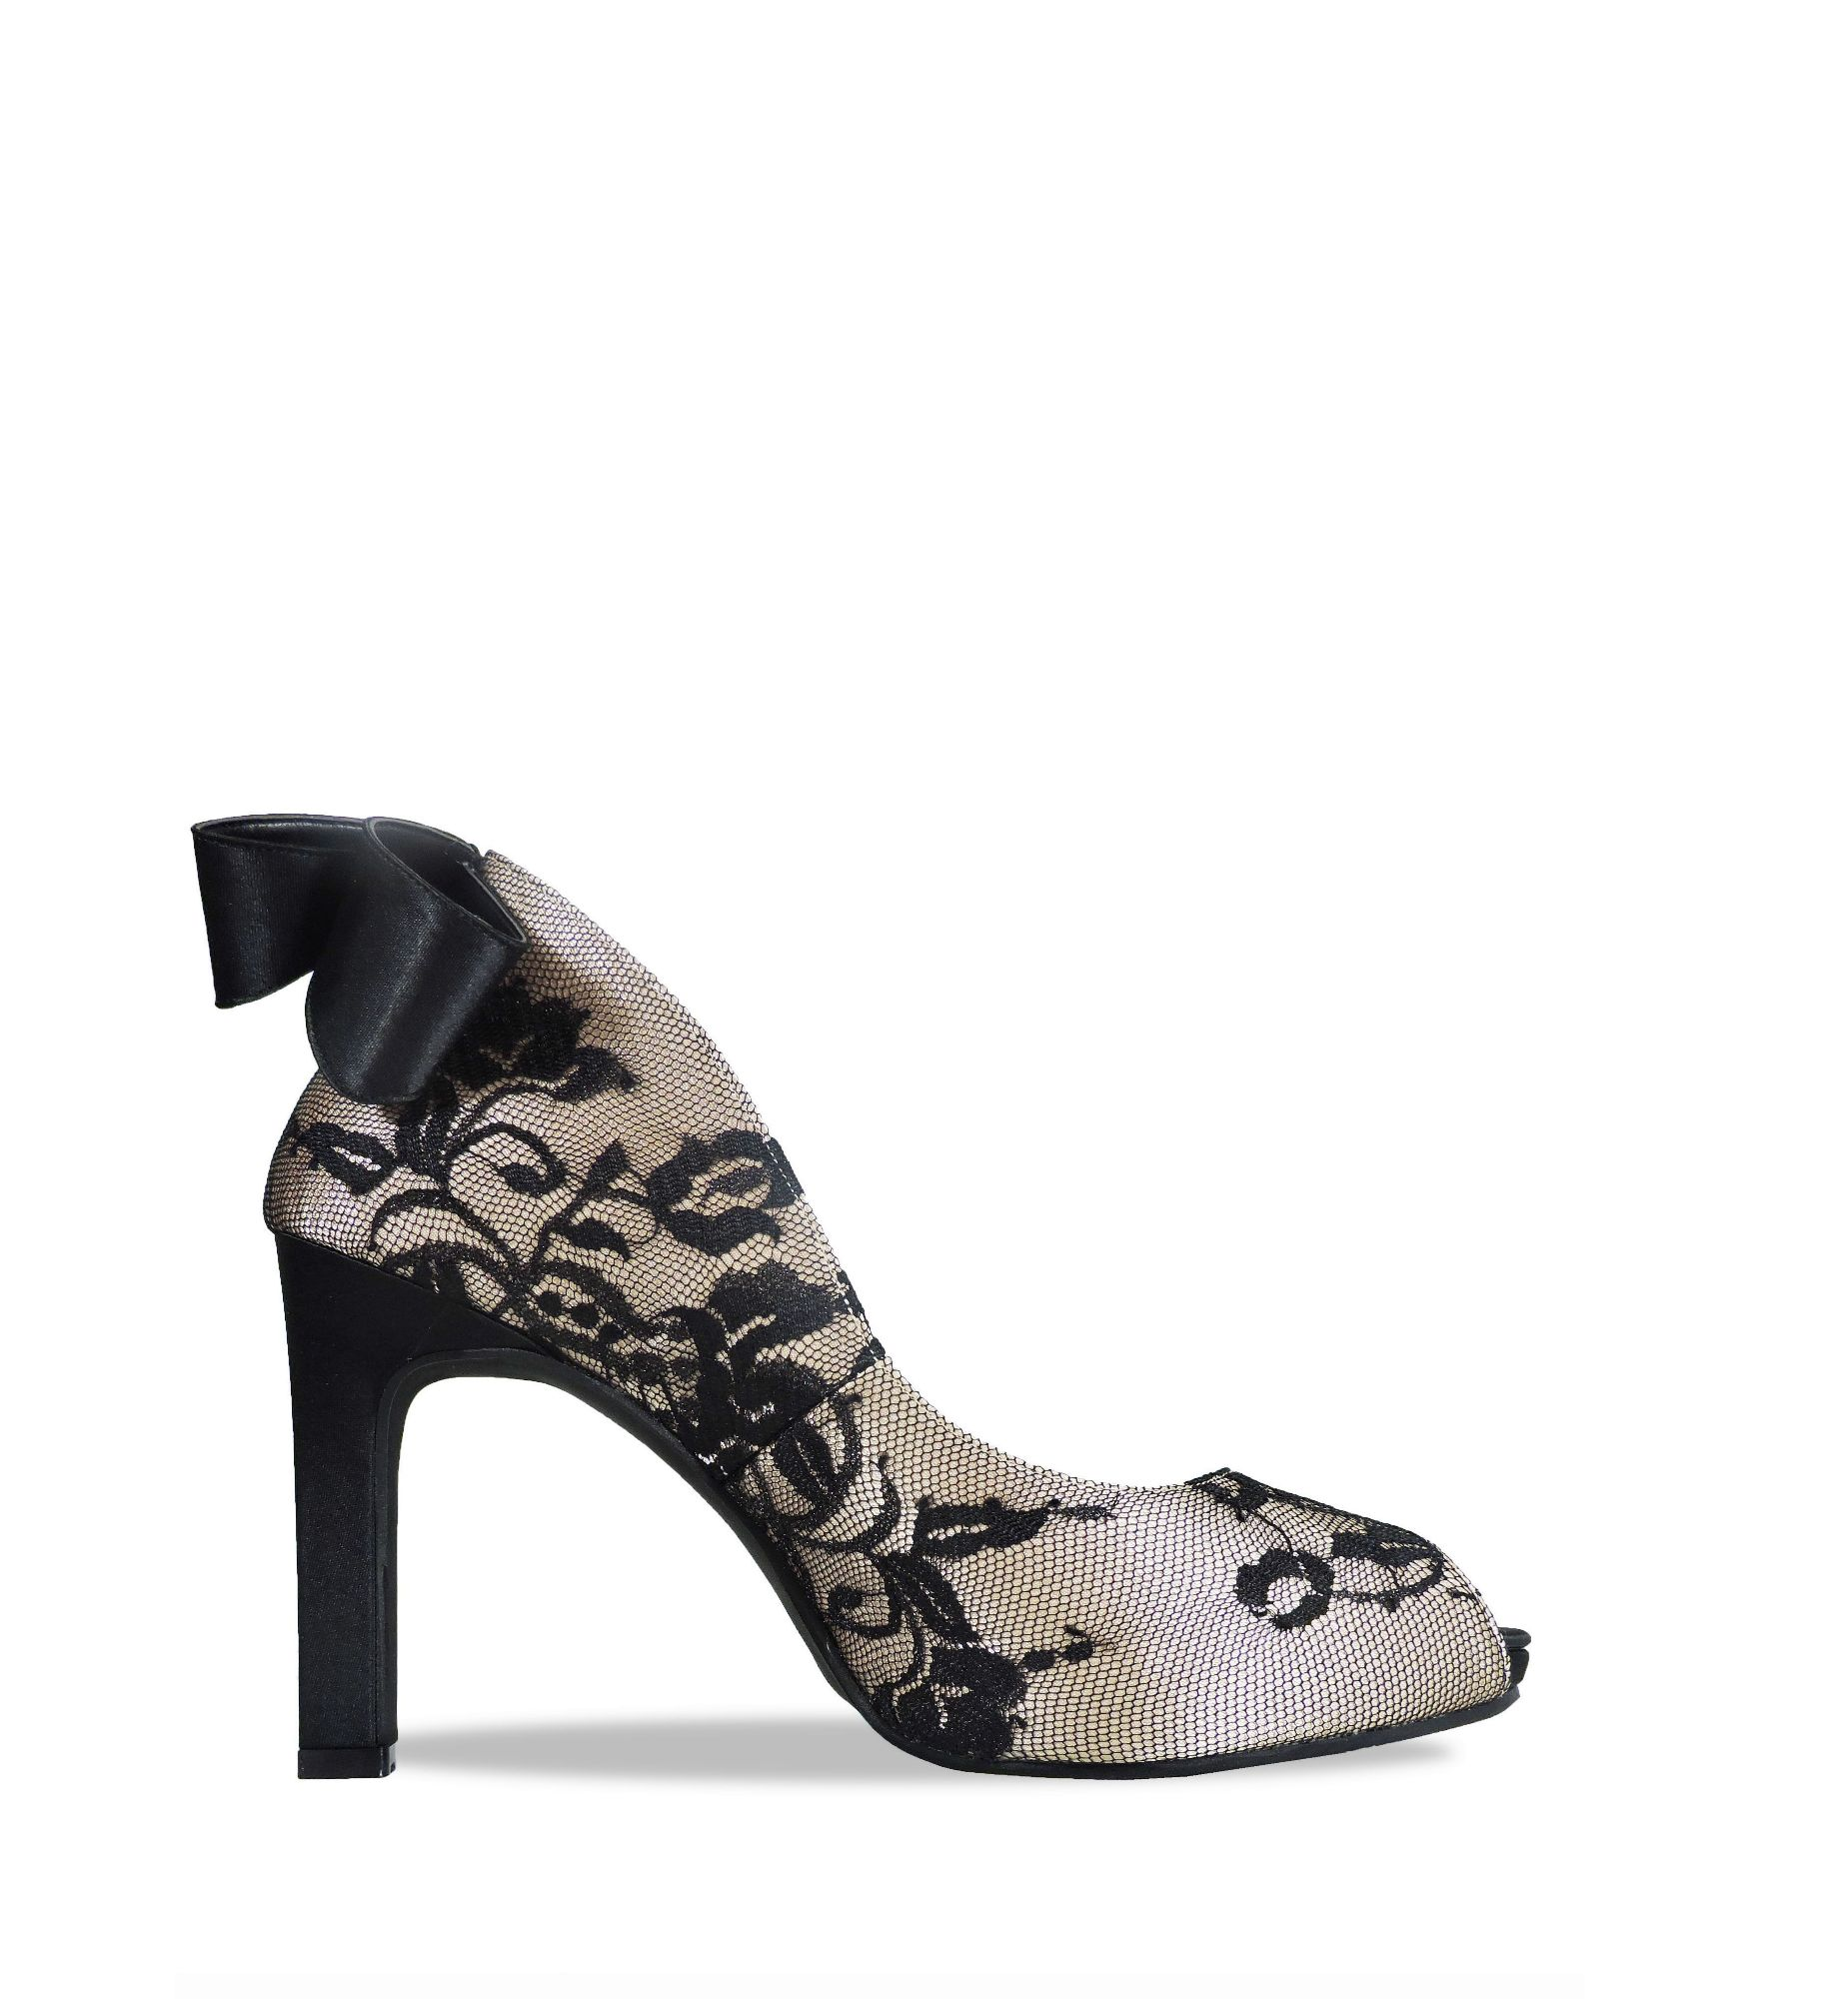 jacquelee royal wedding black heel